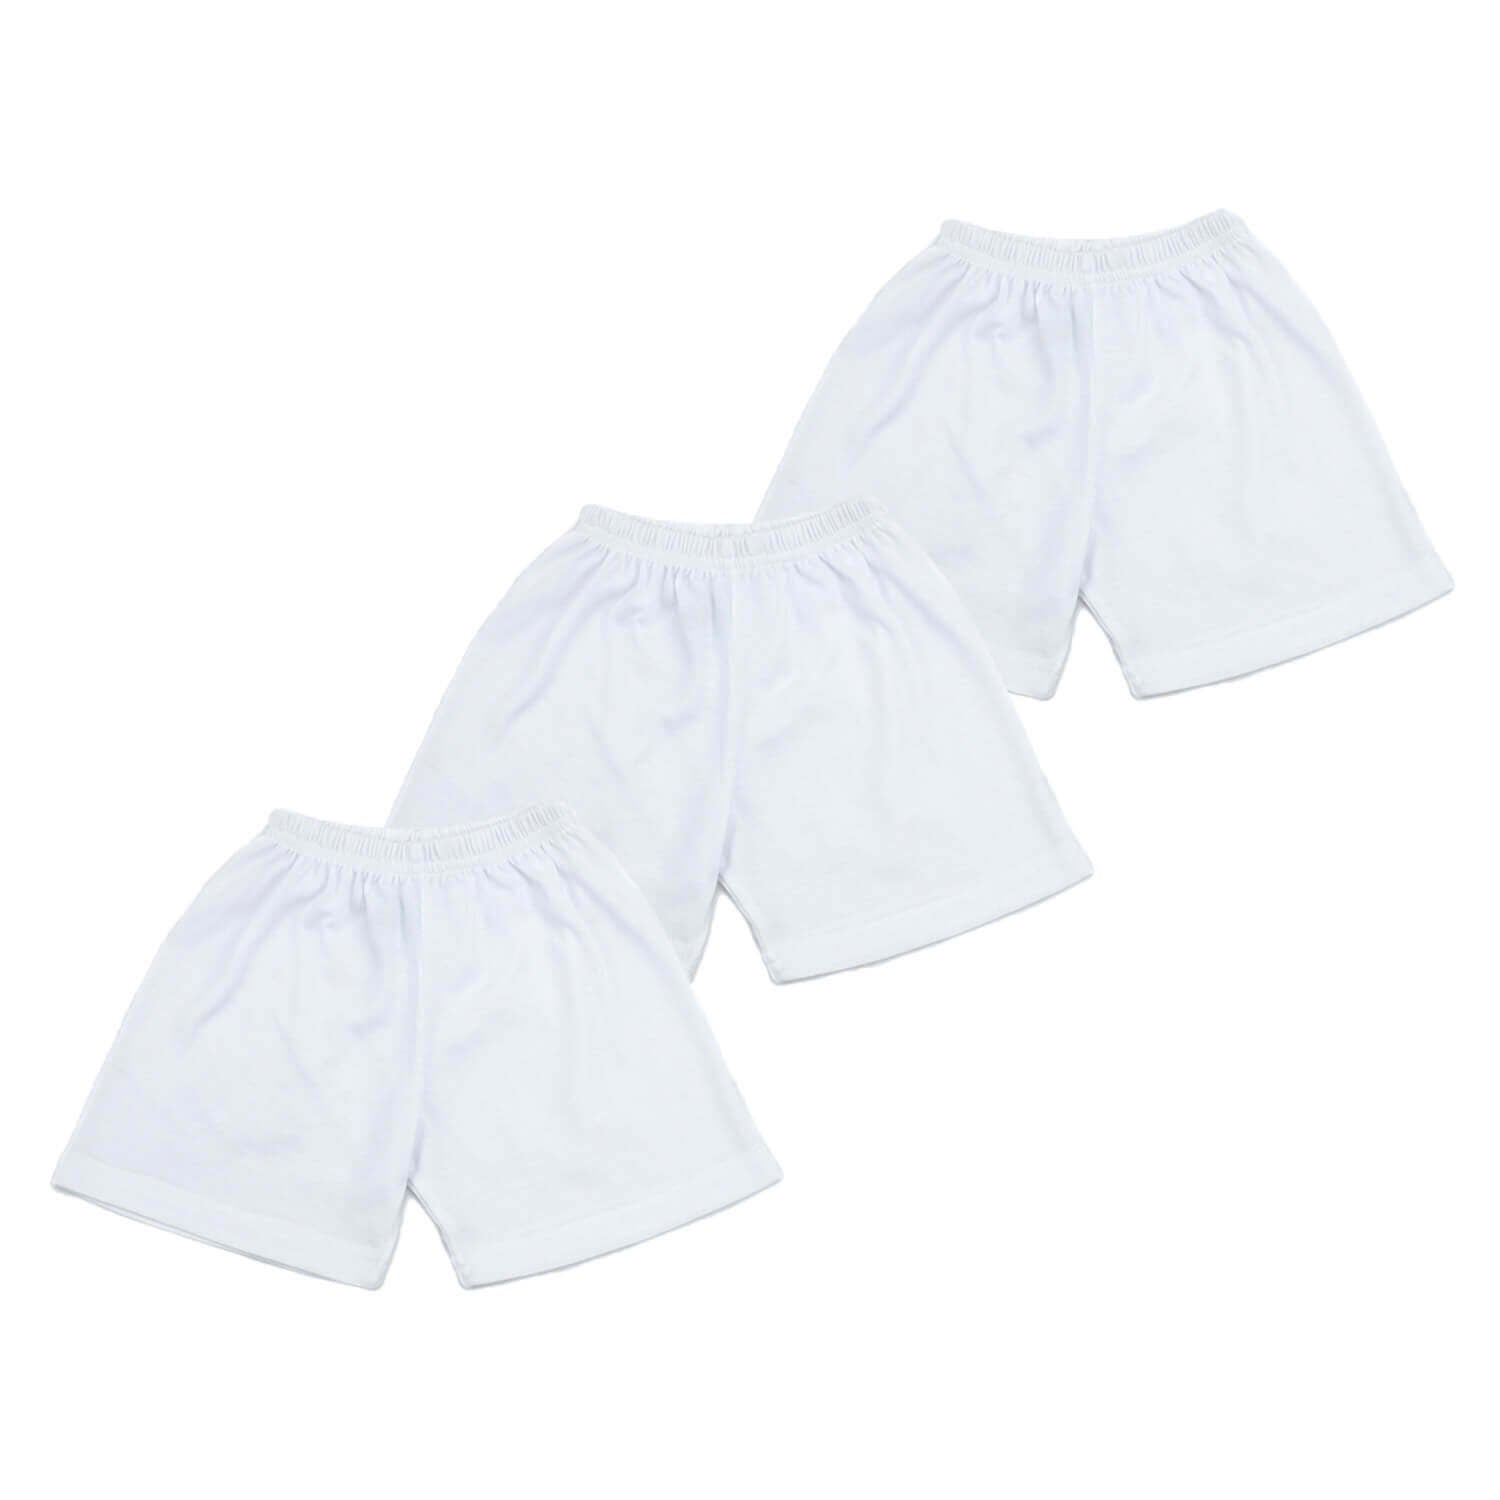 (Unisex) Shorts Pack (3pcs)